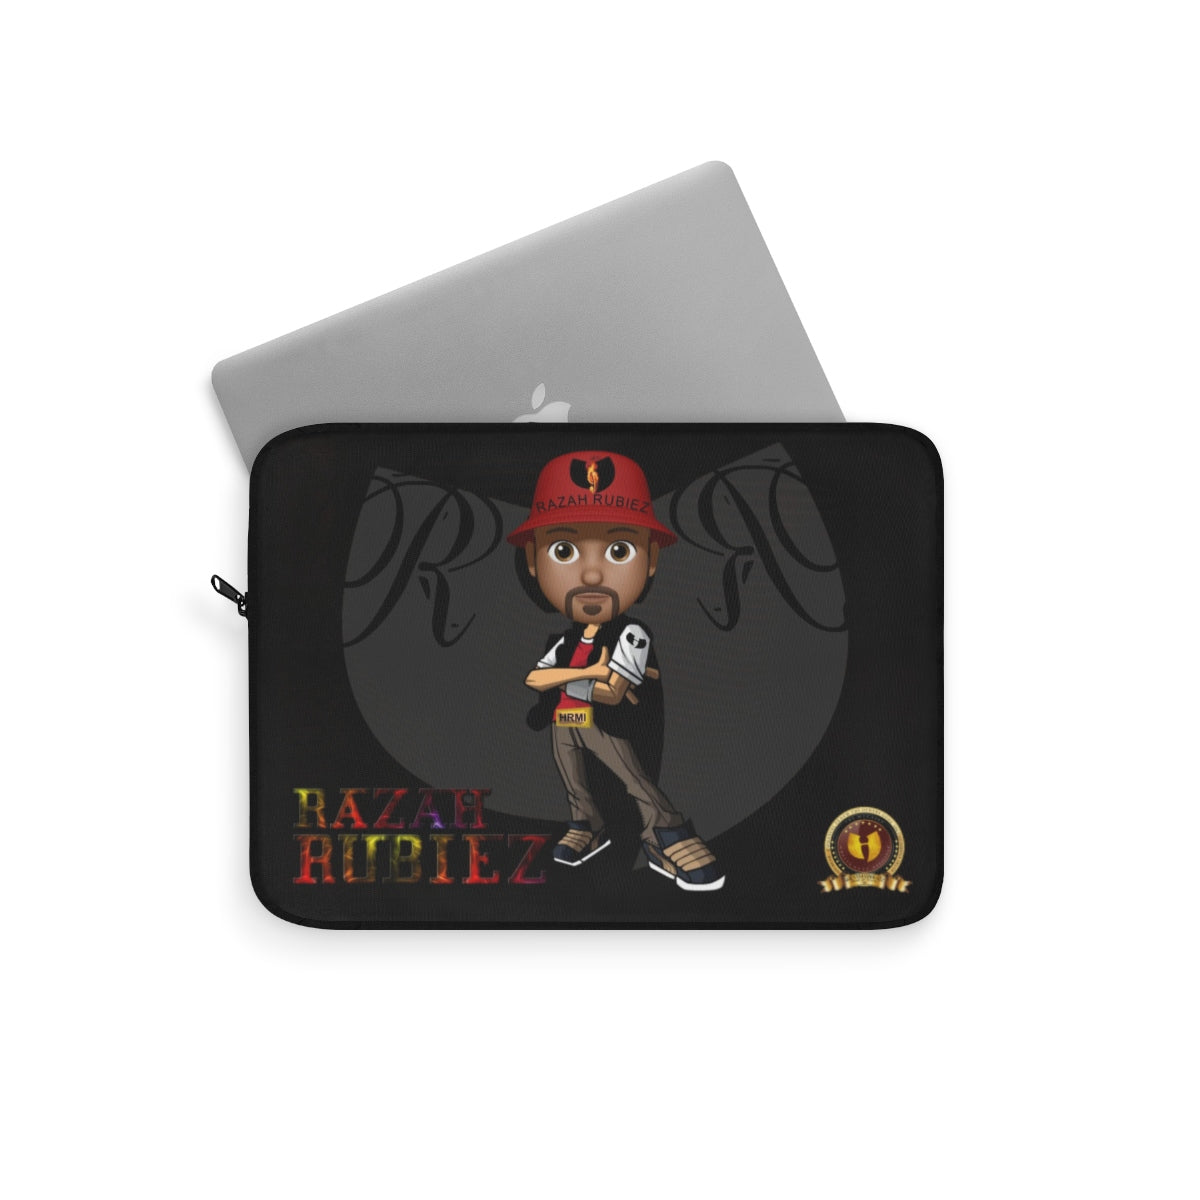 RAZAH RUBIEZ Official HellRazah Music Inc. Collectors Laptop Sleeve HeavenRazah Merch Graphics by SmuveMassBeatz